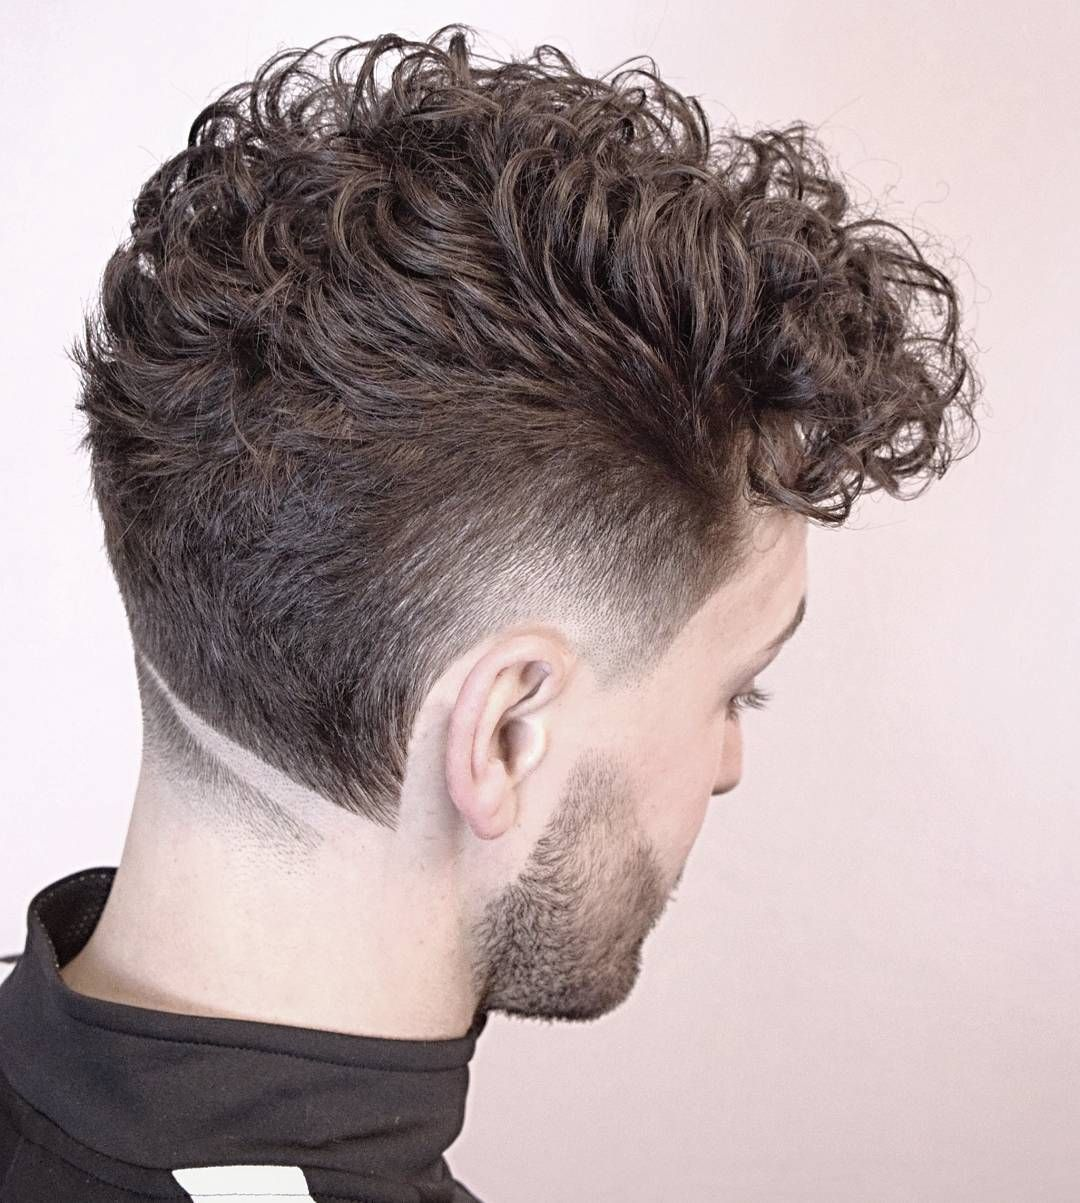 Haircut for boys back view the neckline hair design trend just keeps getting bigger building